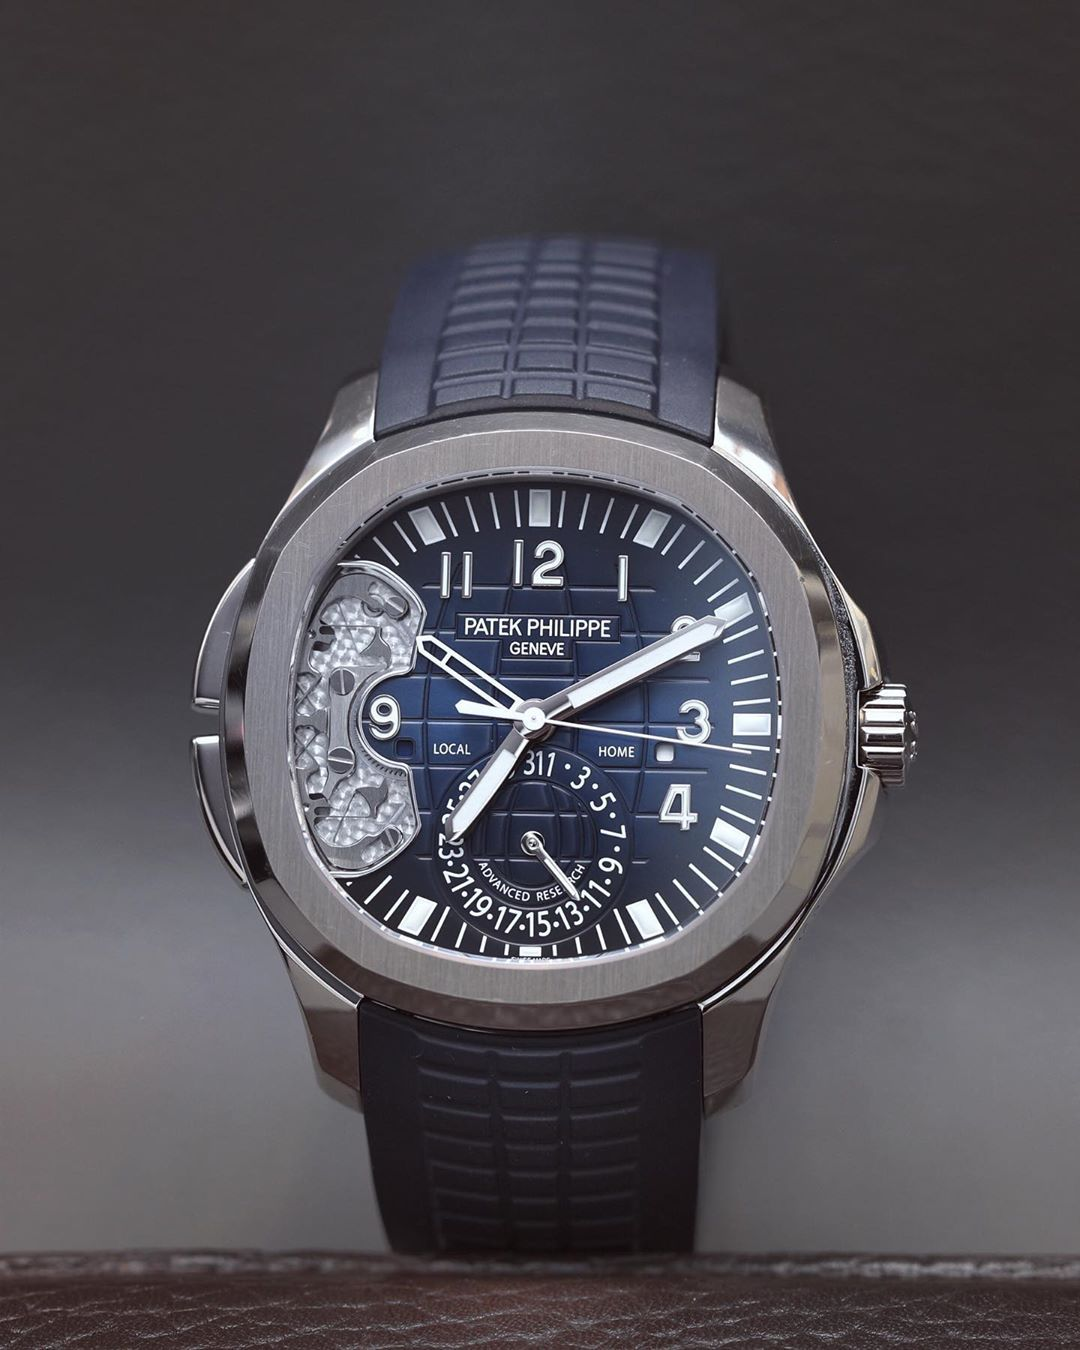 Scratches Are A Part Of Life Patekphilippe Aquanaut Travel Time Ref 5650g Ad Watches For Men Swiss Watches Watches